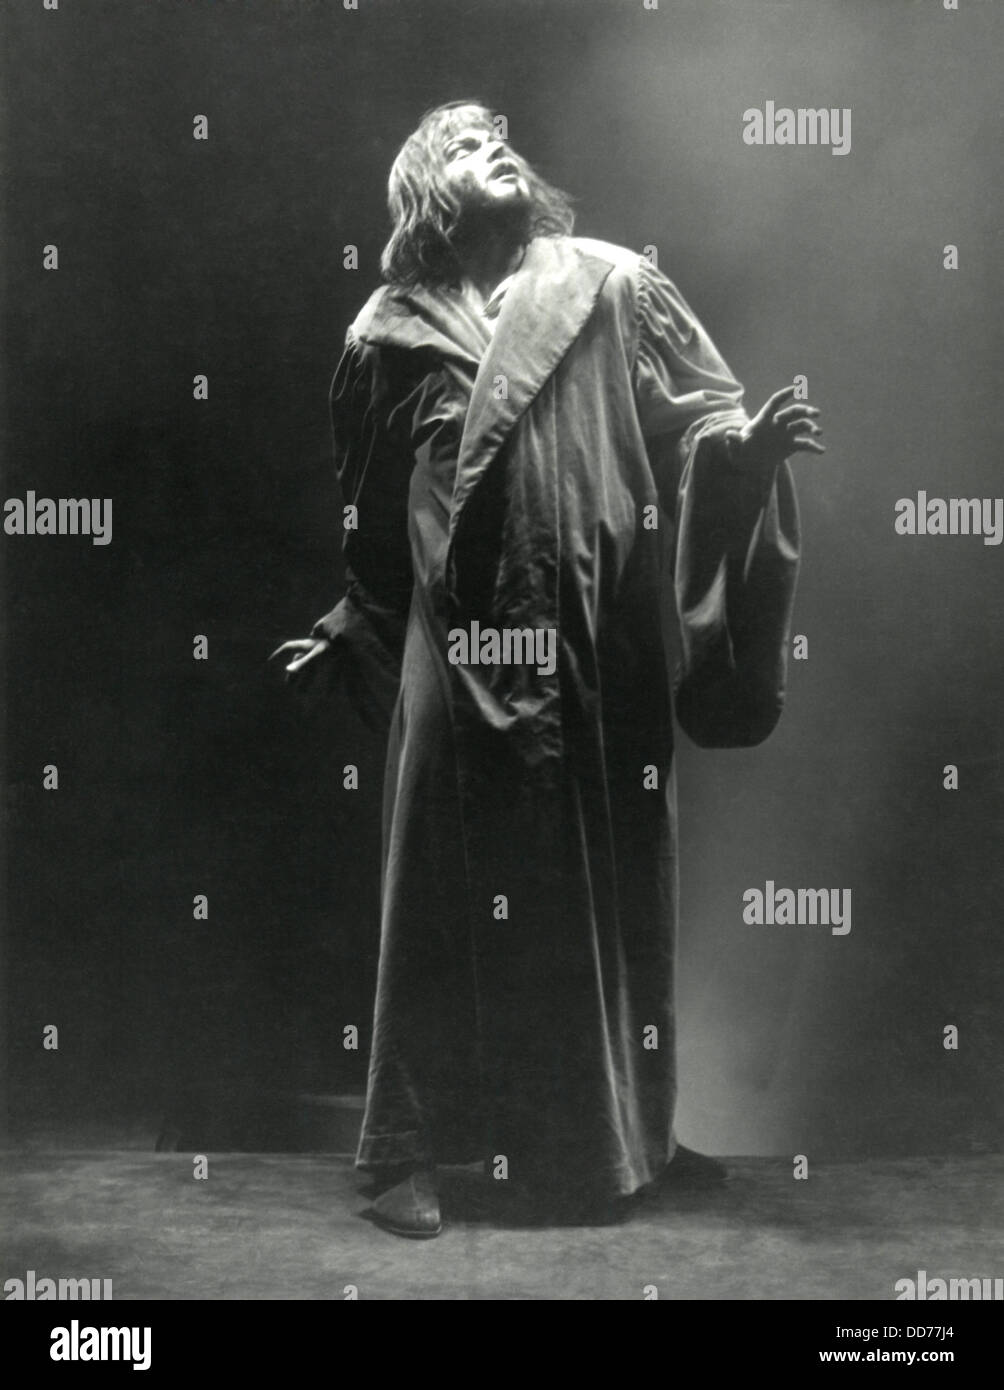 Orson Welles in the WPA's Theater Project production of Dr. Faustus, 1937. (BSLOC_2013_9_18) - Stock Image